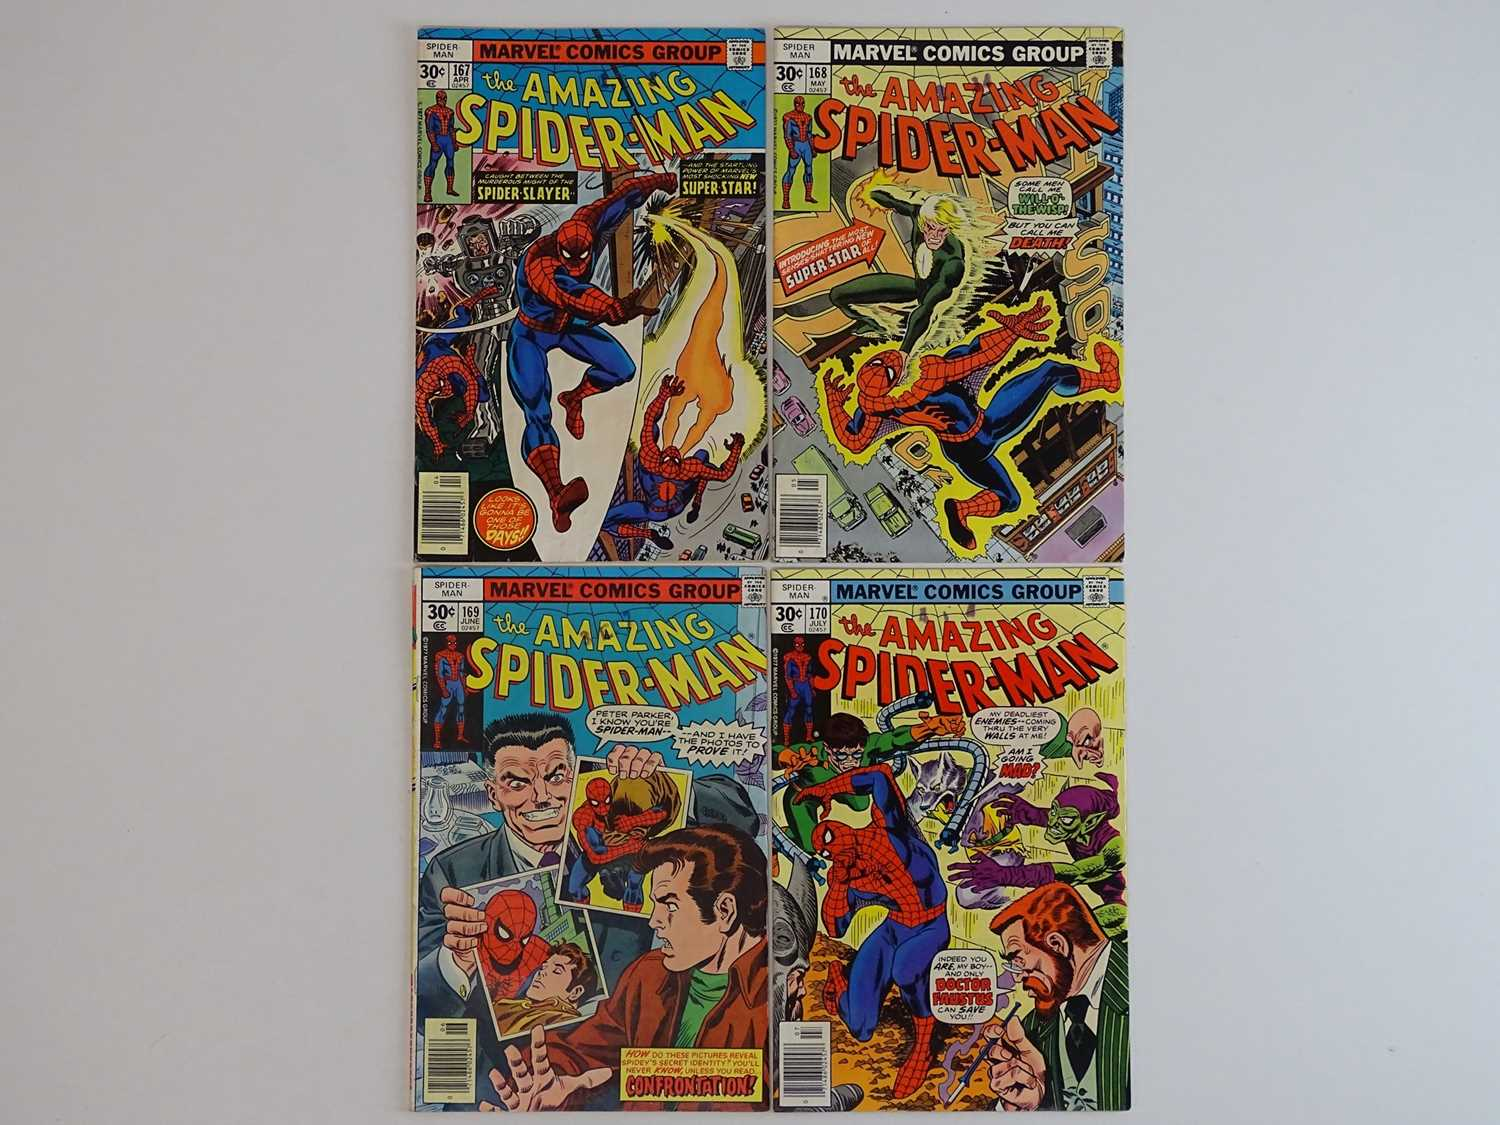 AMAZING SPIDER-MAN #167, 168, 169, 170 - (4 in Lot) - (1977 - MARVEL) - Includes First appearance of